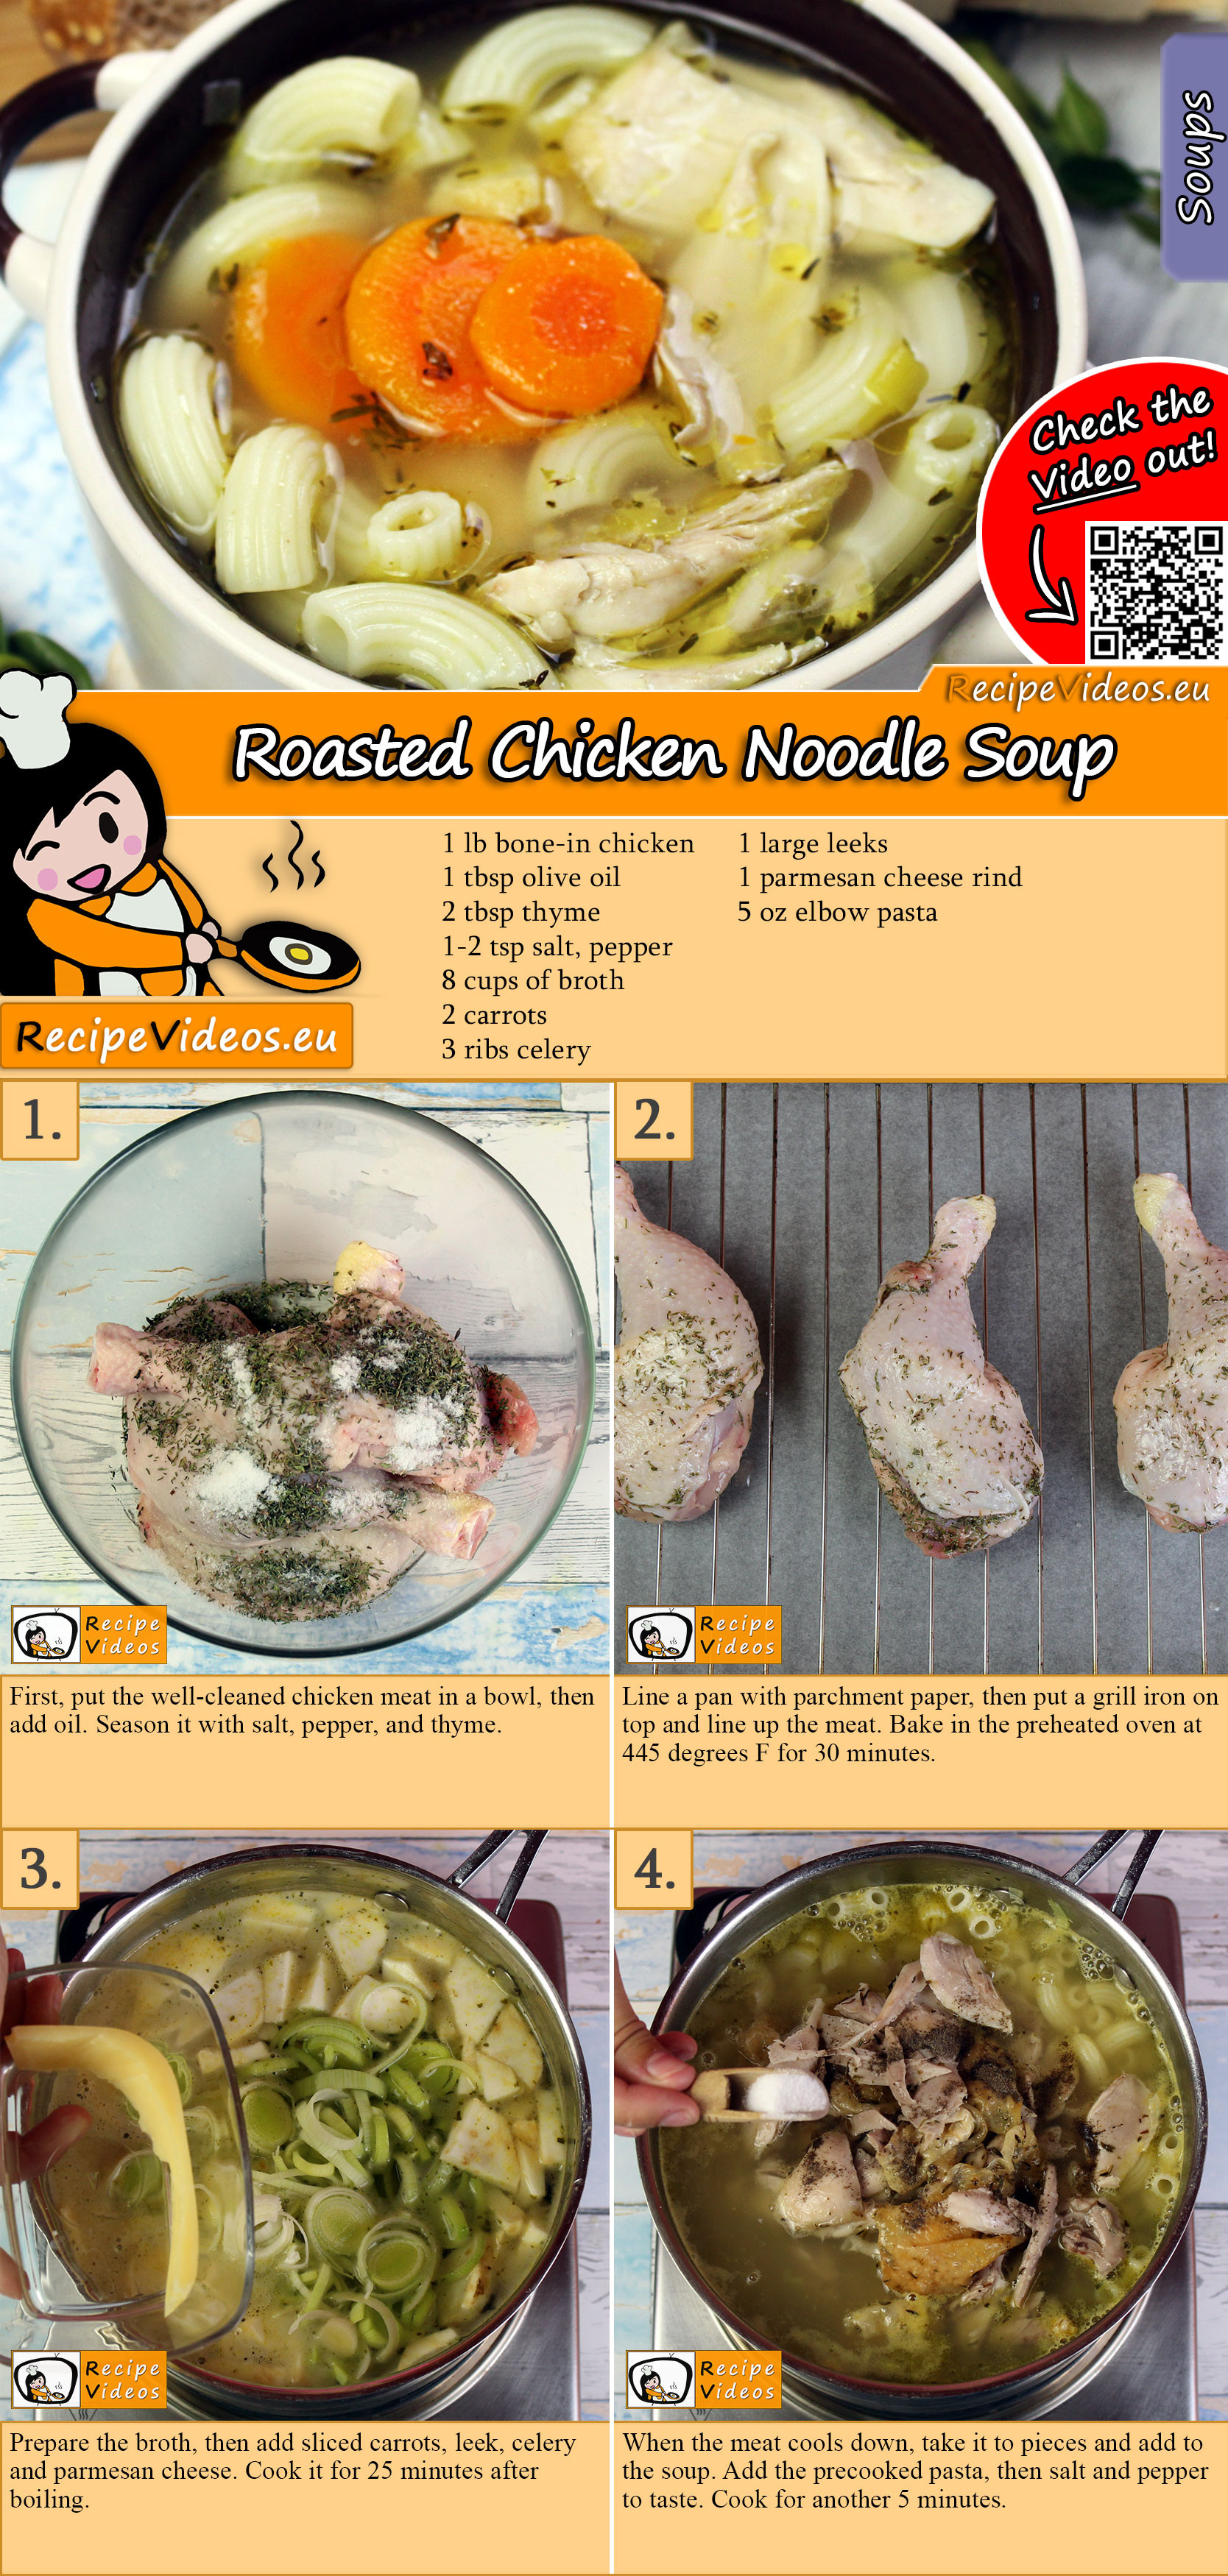 Roasted Chicken Noodle Soup recipe with video